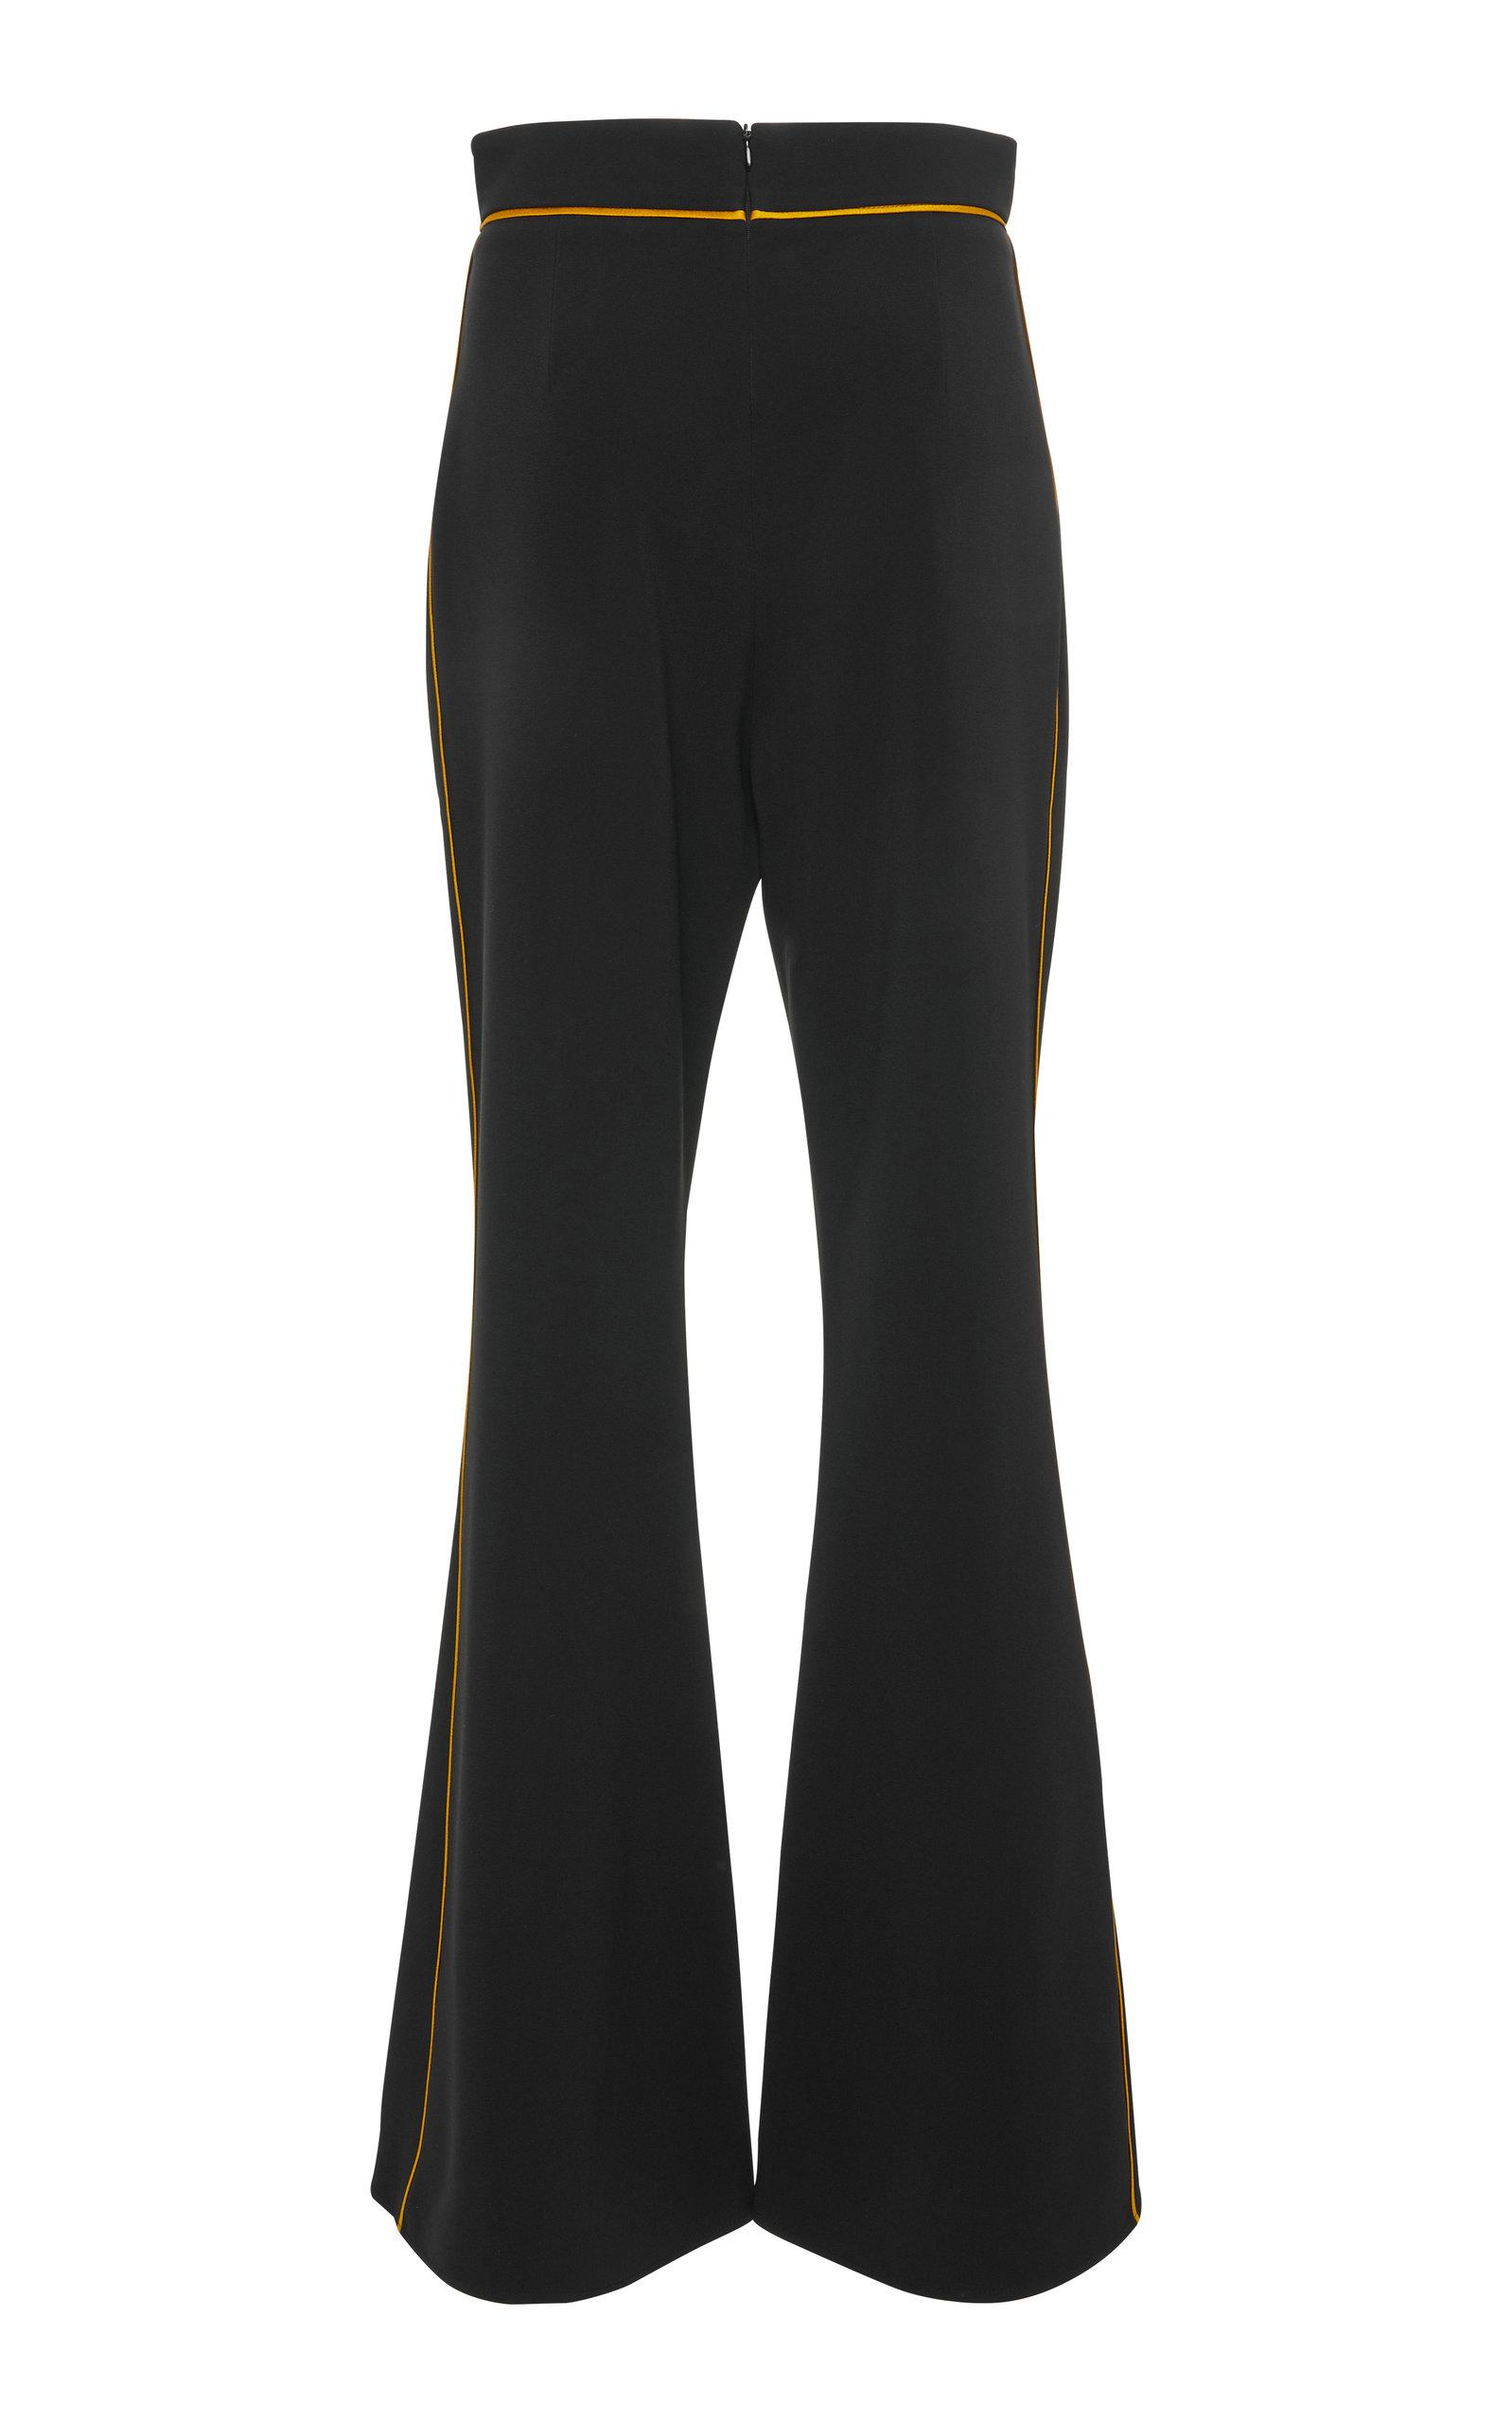 Contrast High-Rise Satin Flared Pants Peter Pilotto zECcL04uop